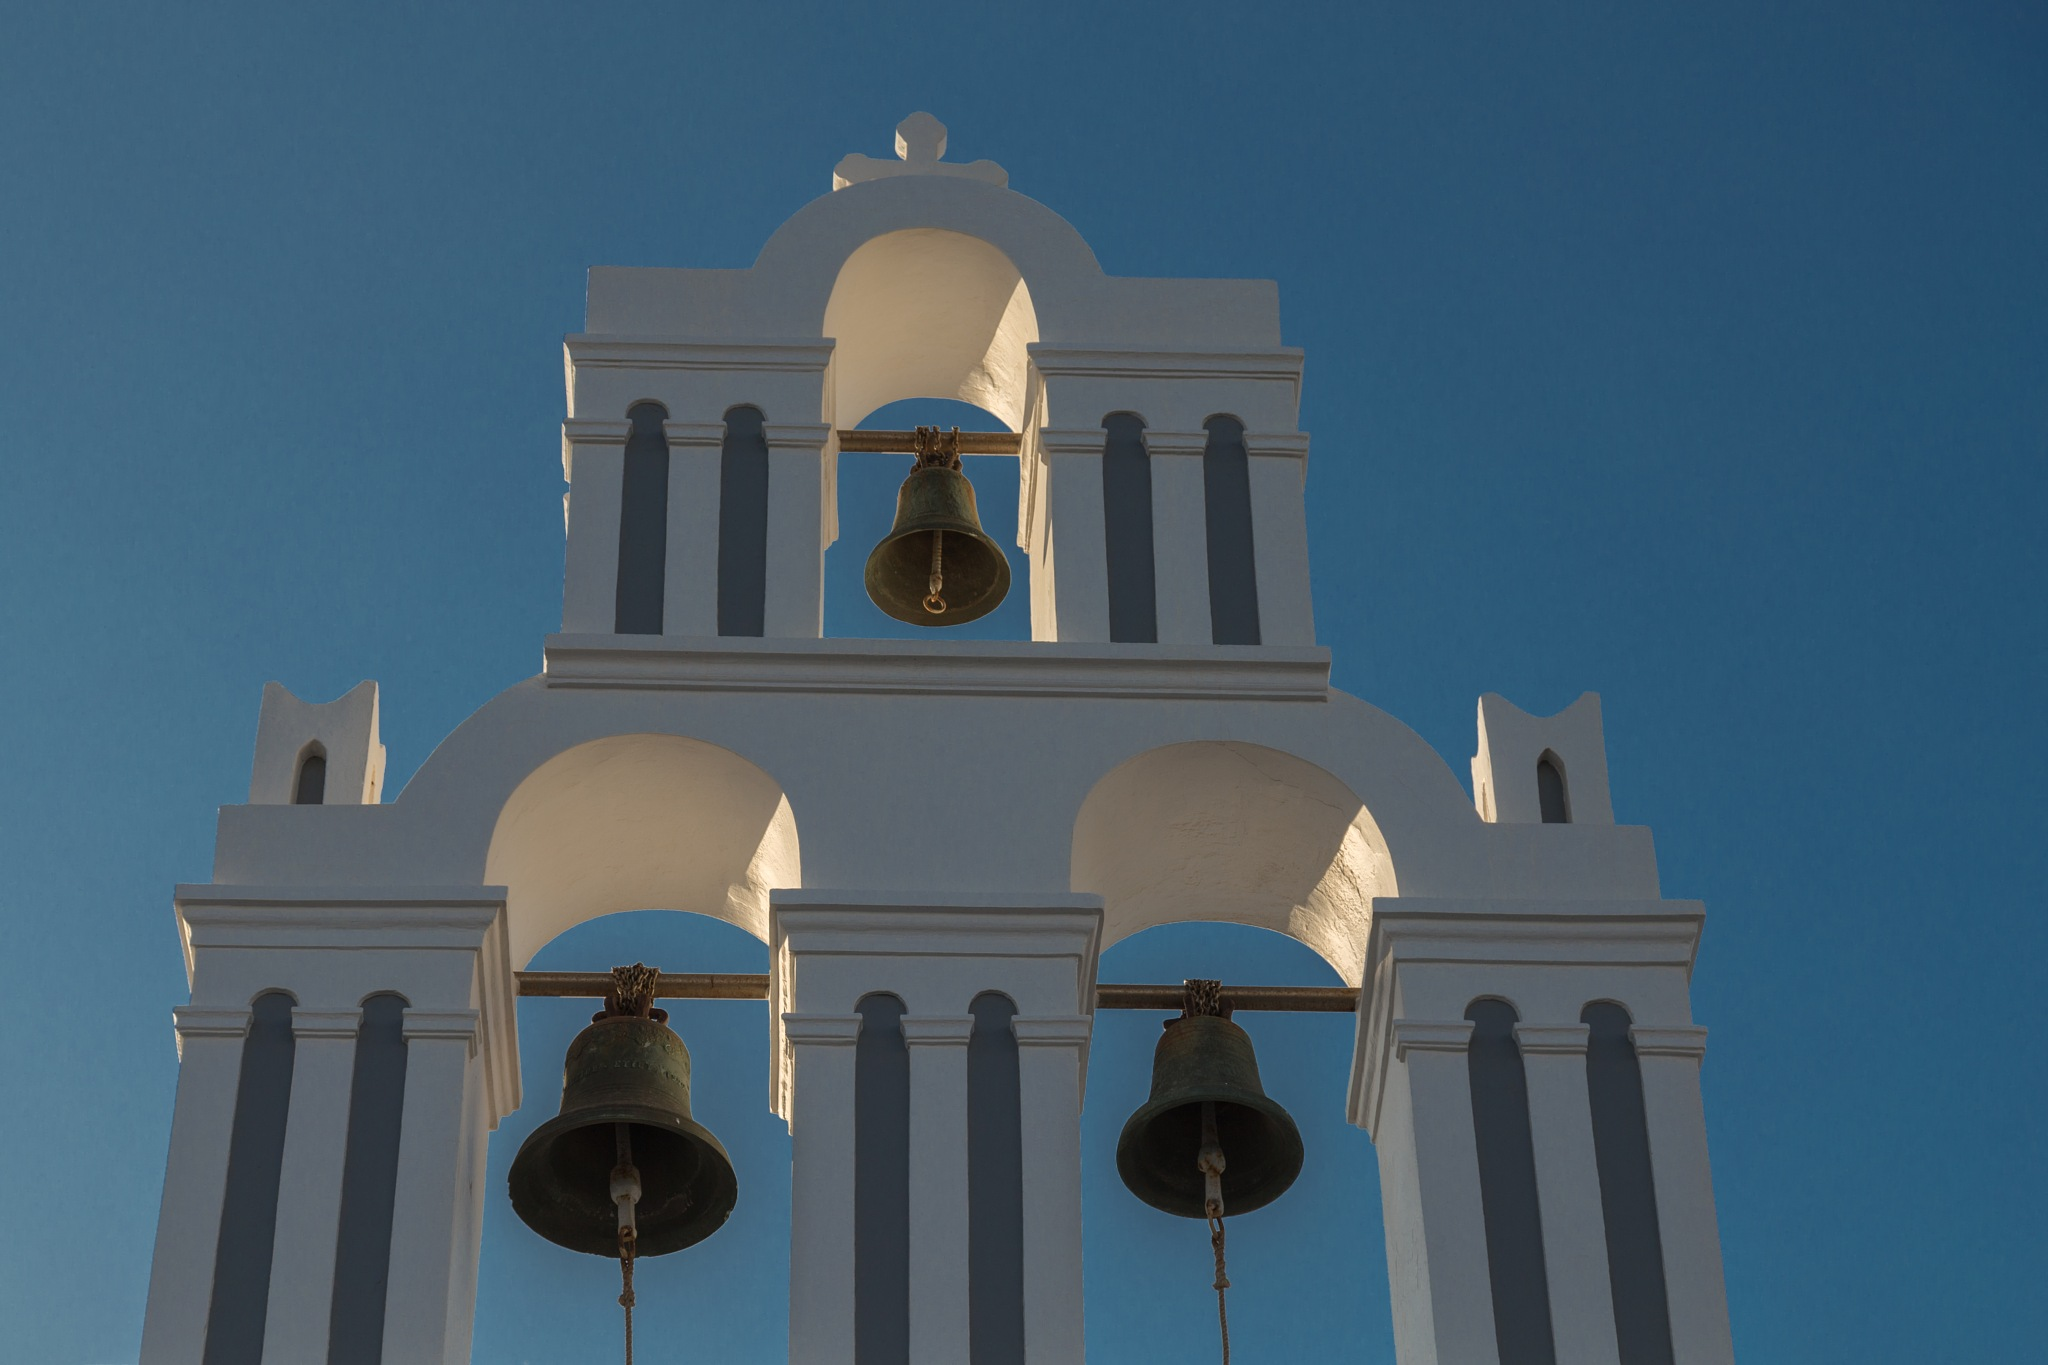 Morning Bells by charles desrosiers